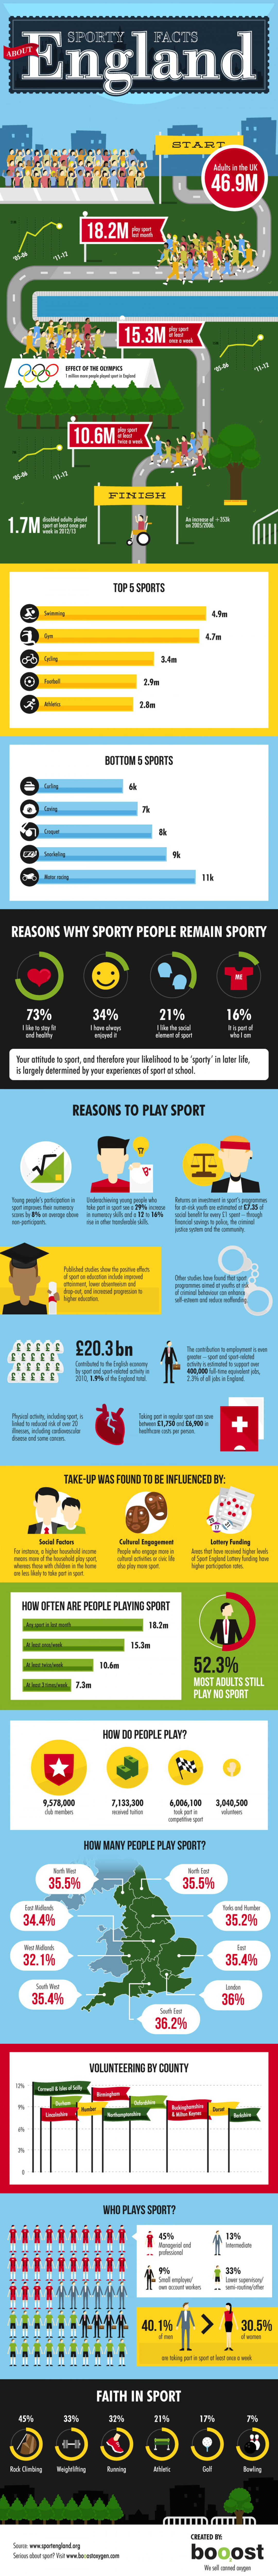 Sporty Facts About England Infographic